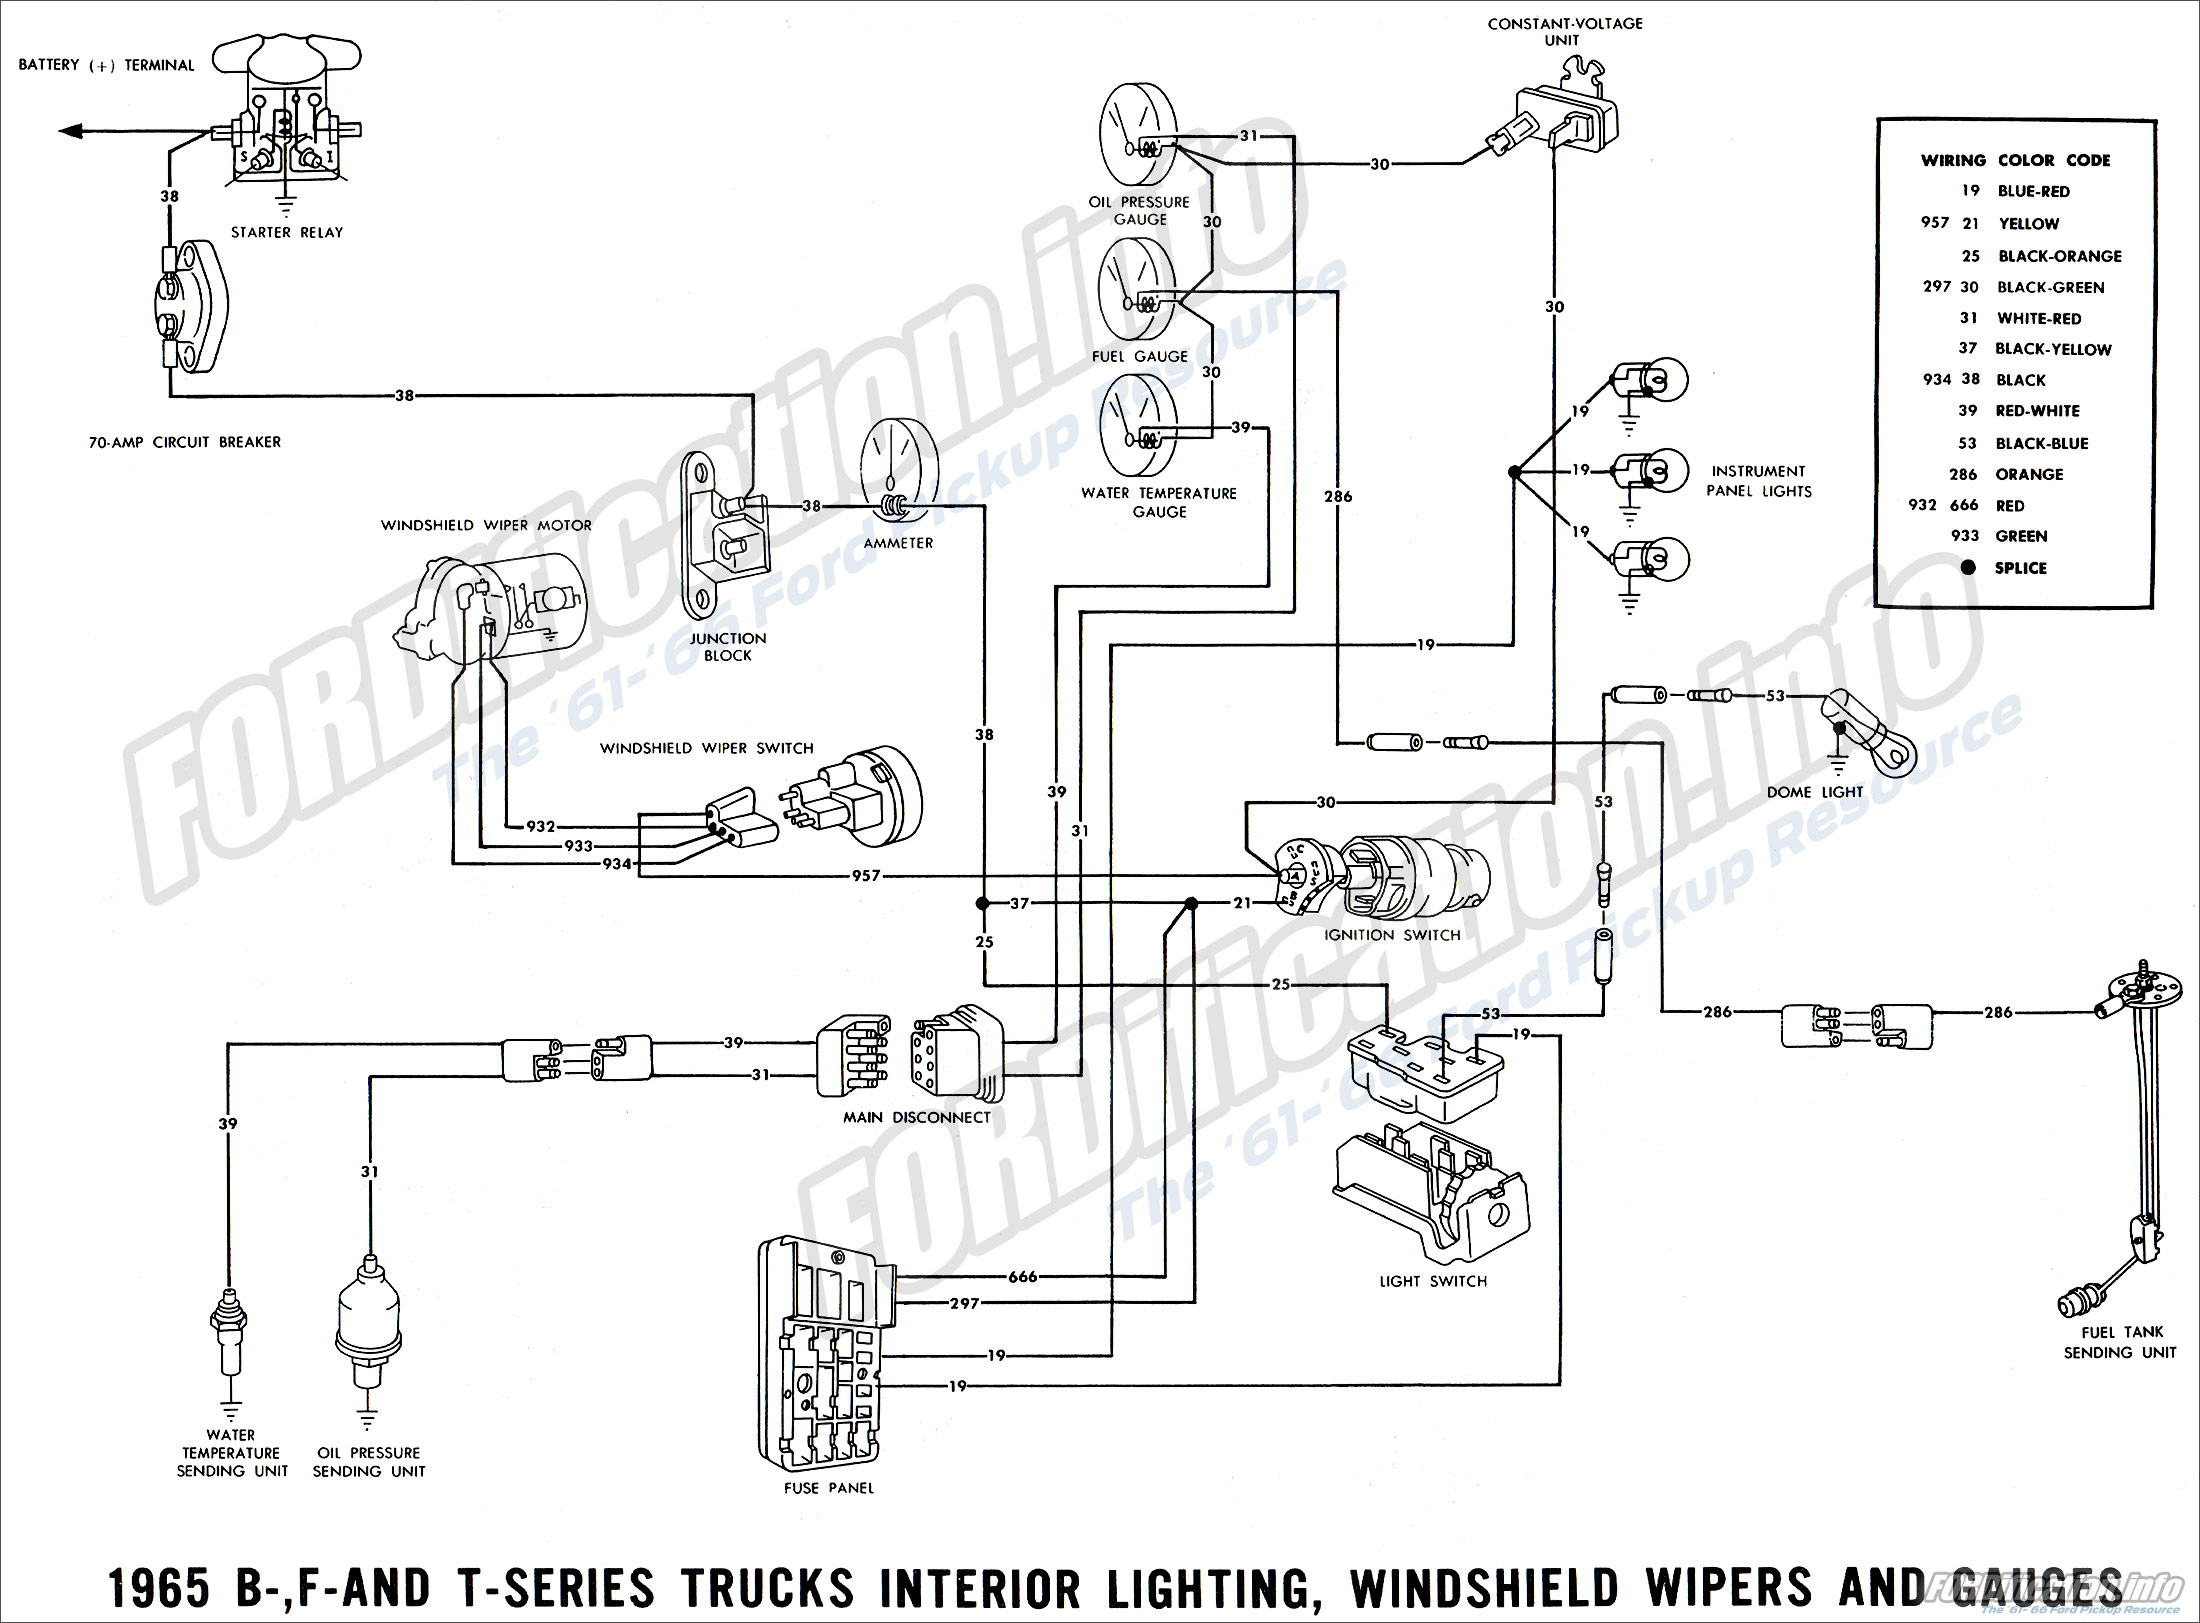 1965 Tvr Wiring Diagram Schematics Diagrams House Symbols Ford Pick Up U2022 Rh Maxturner Co 3 Way Switch